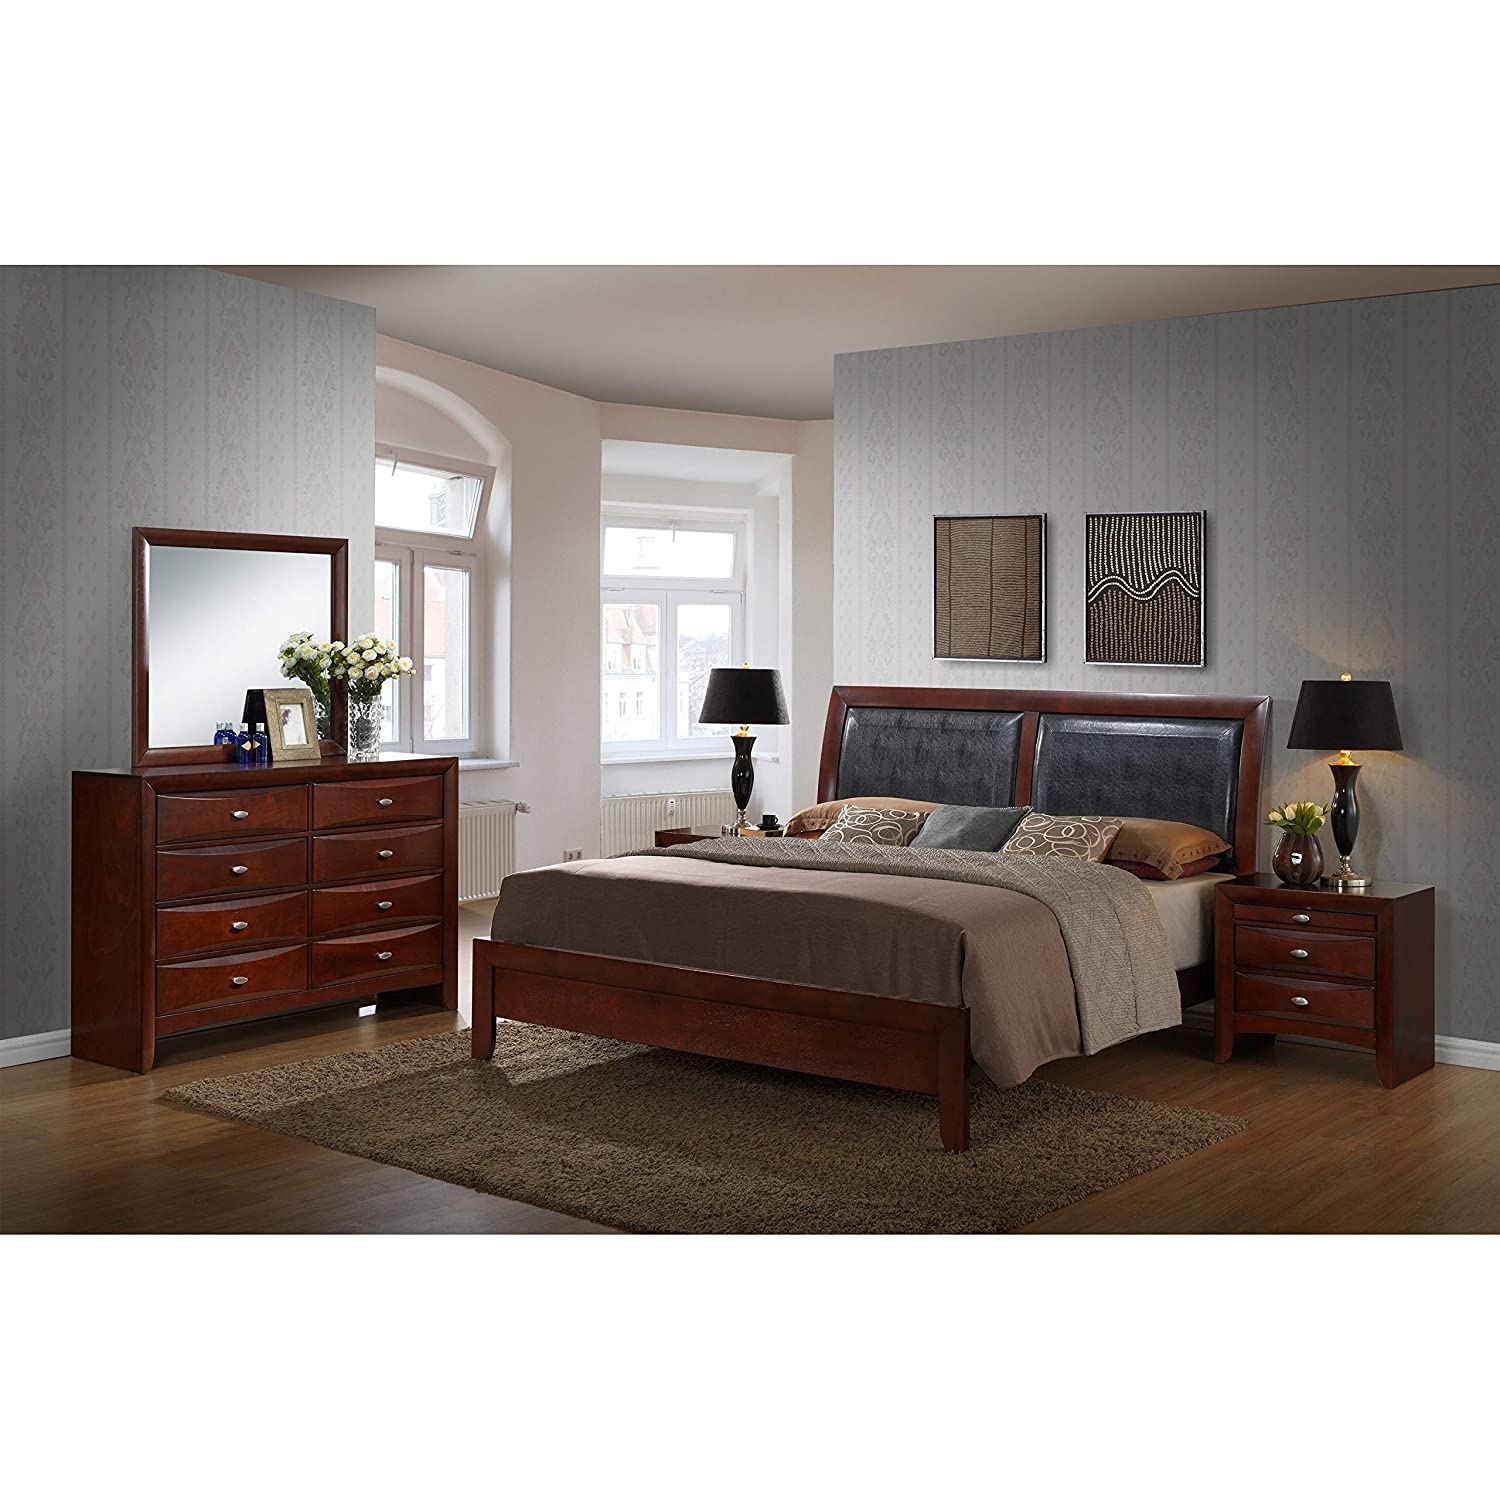 Amazon com roundhill furniture emily 111 contemporary wood bedroom set with bed dresser mirror 2 night stands queen merlot kitchen dining